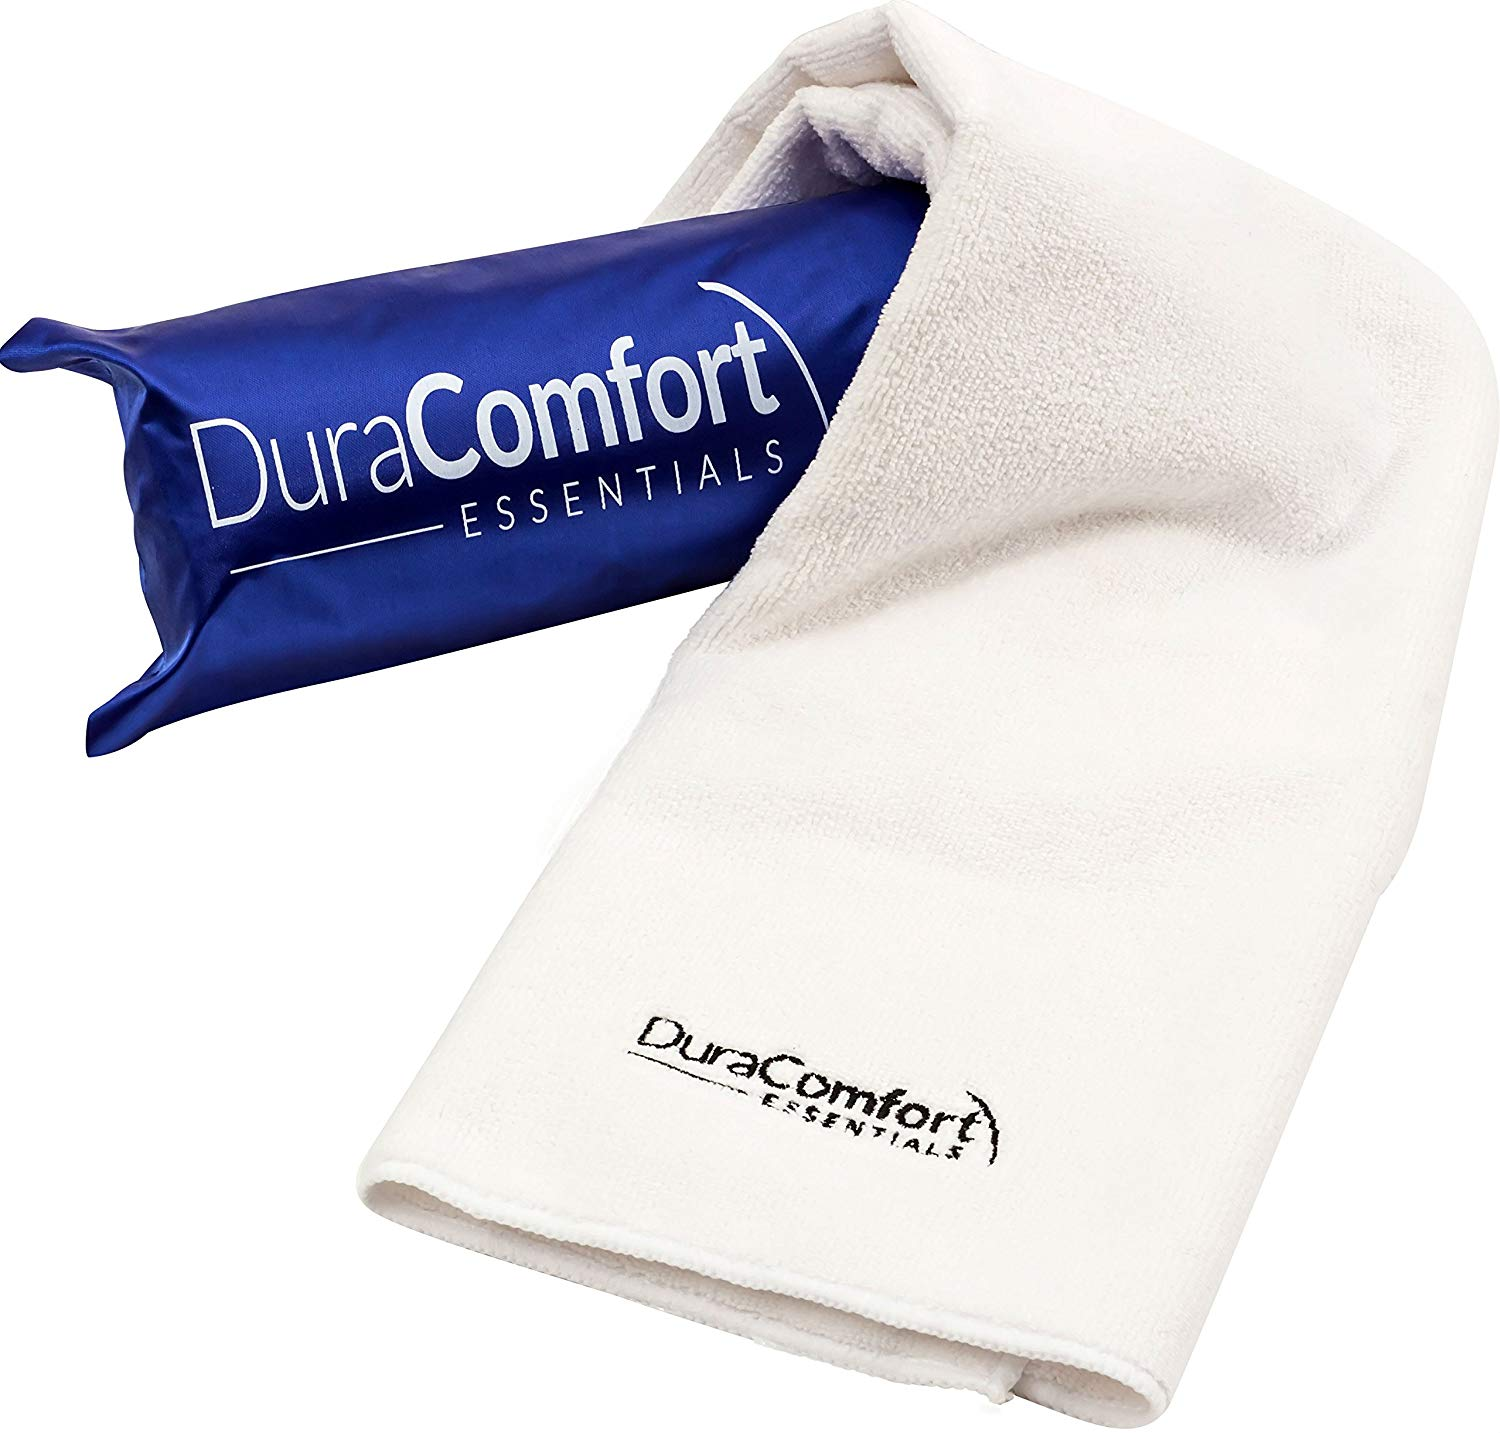 DuraComfort Super Absorbent